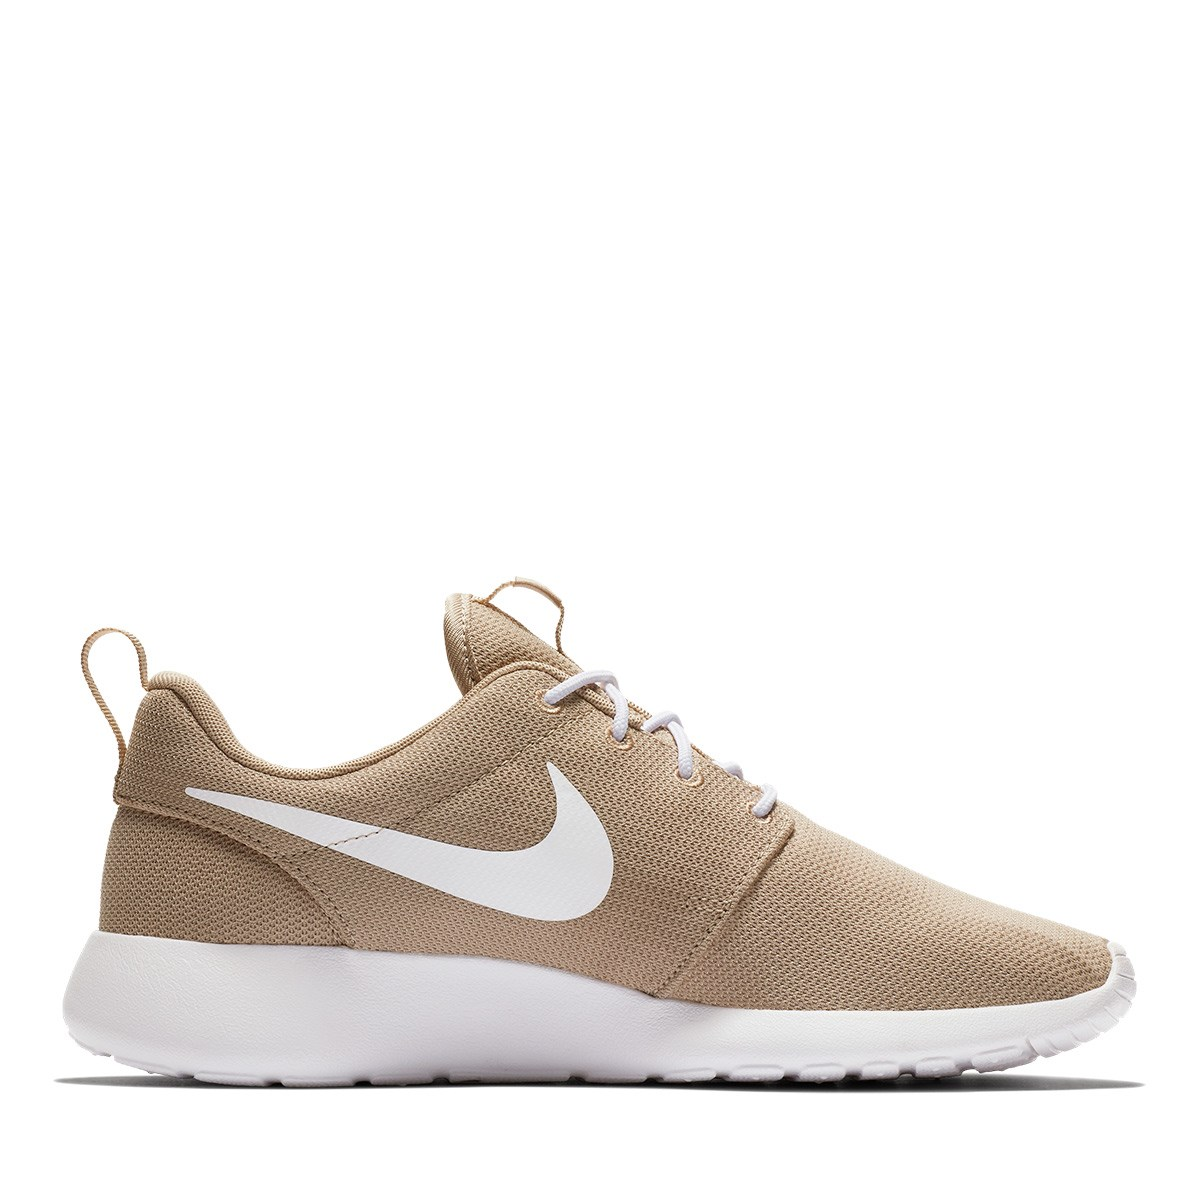 Men's Roshe One Sneakers in Beige